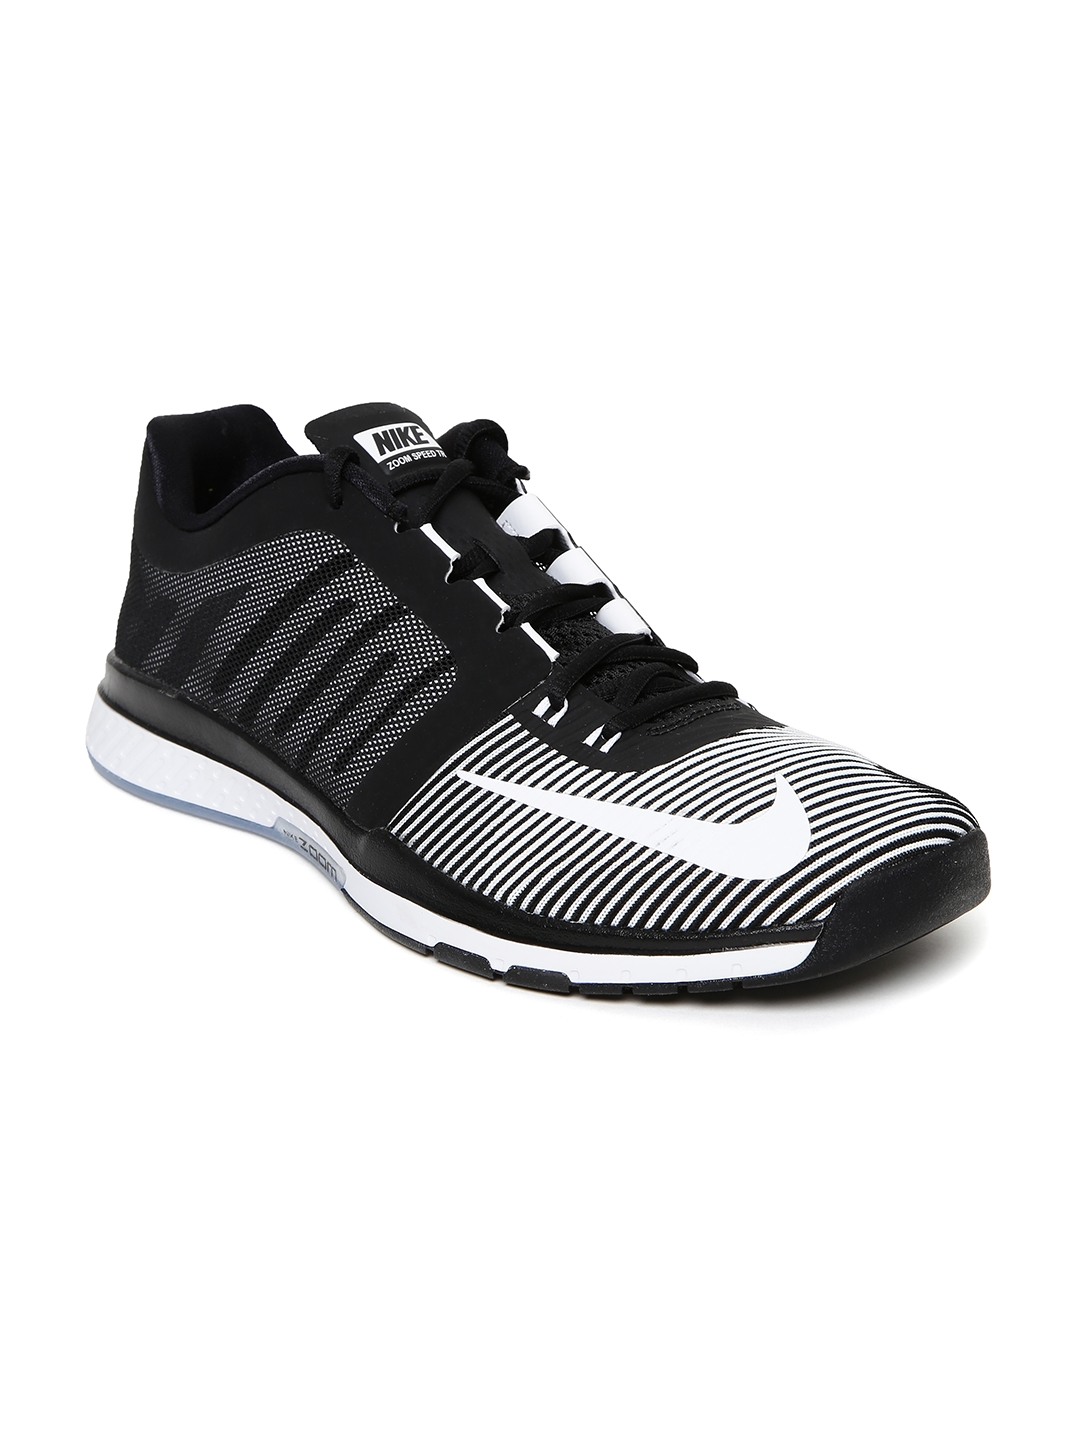 a294915d3aa54 Buy Nike Men White & Black Zoom Speed TR3 Training Shoes - Sports ...